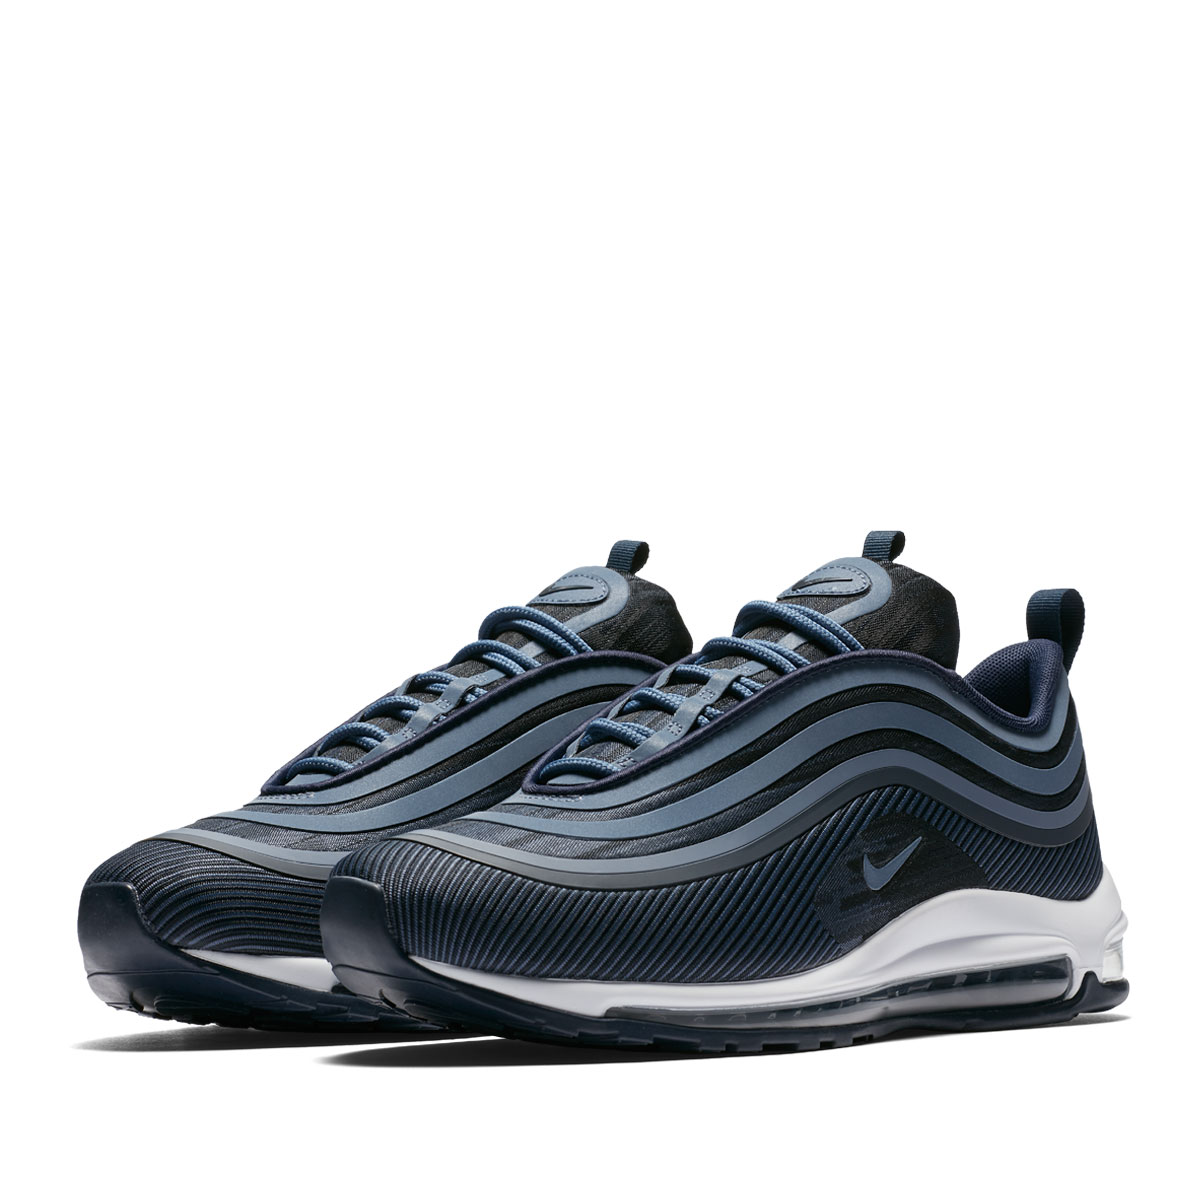 NIKE AIR MAX 97 UL  17 (Kie Ney AMAX 97 ultra 17) OBSIDIAN DIFFUSED BLUE-WHITE  18SP-I 85c19c69acb9